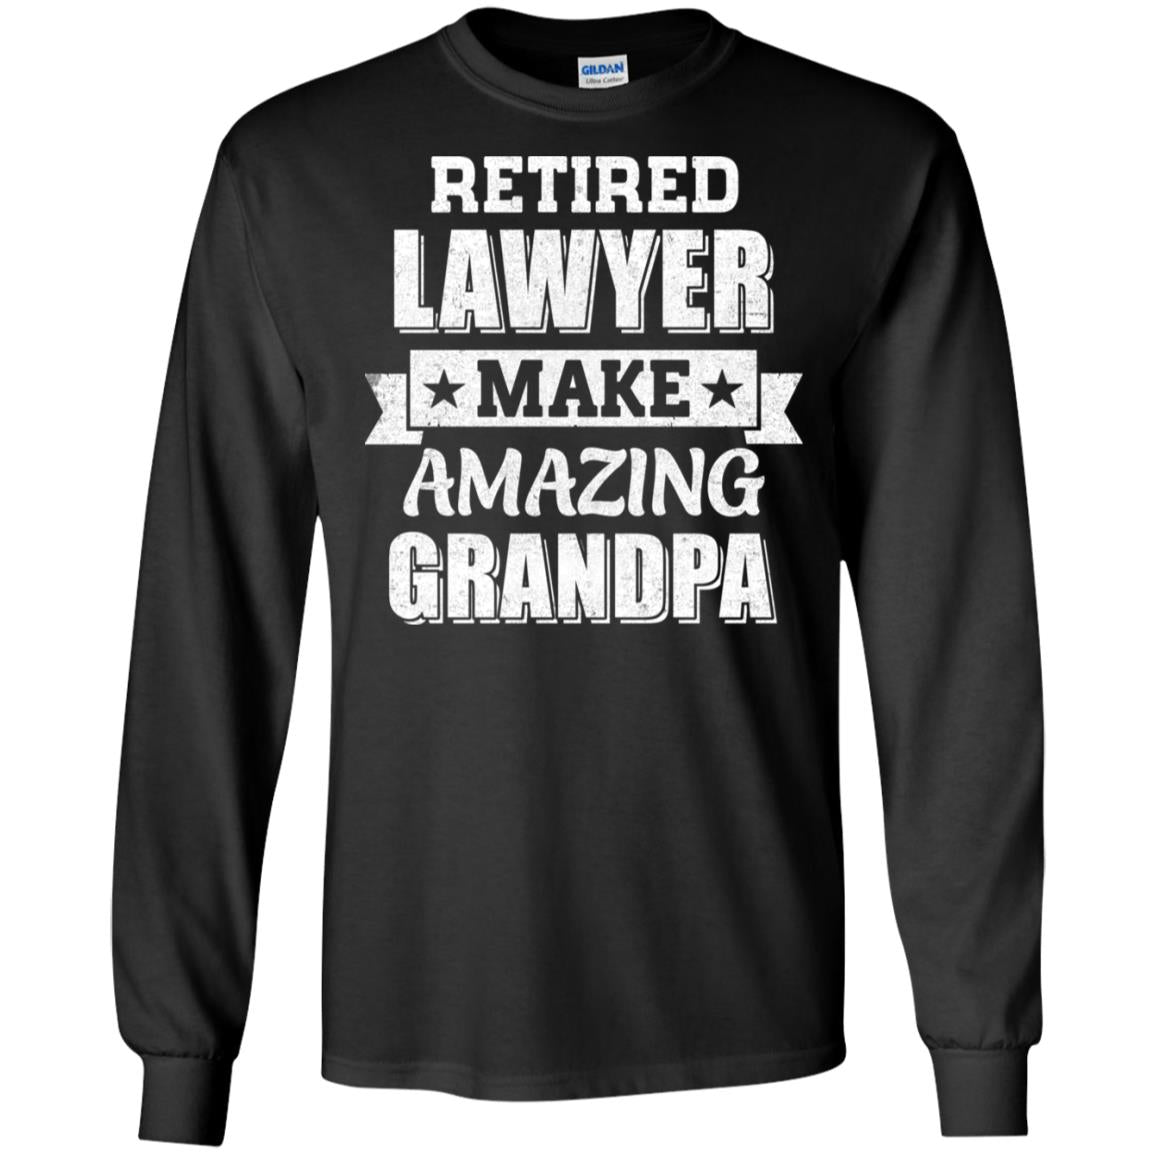 Funny Retired Lawyer Make Amazing Grandpa Gifts